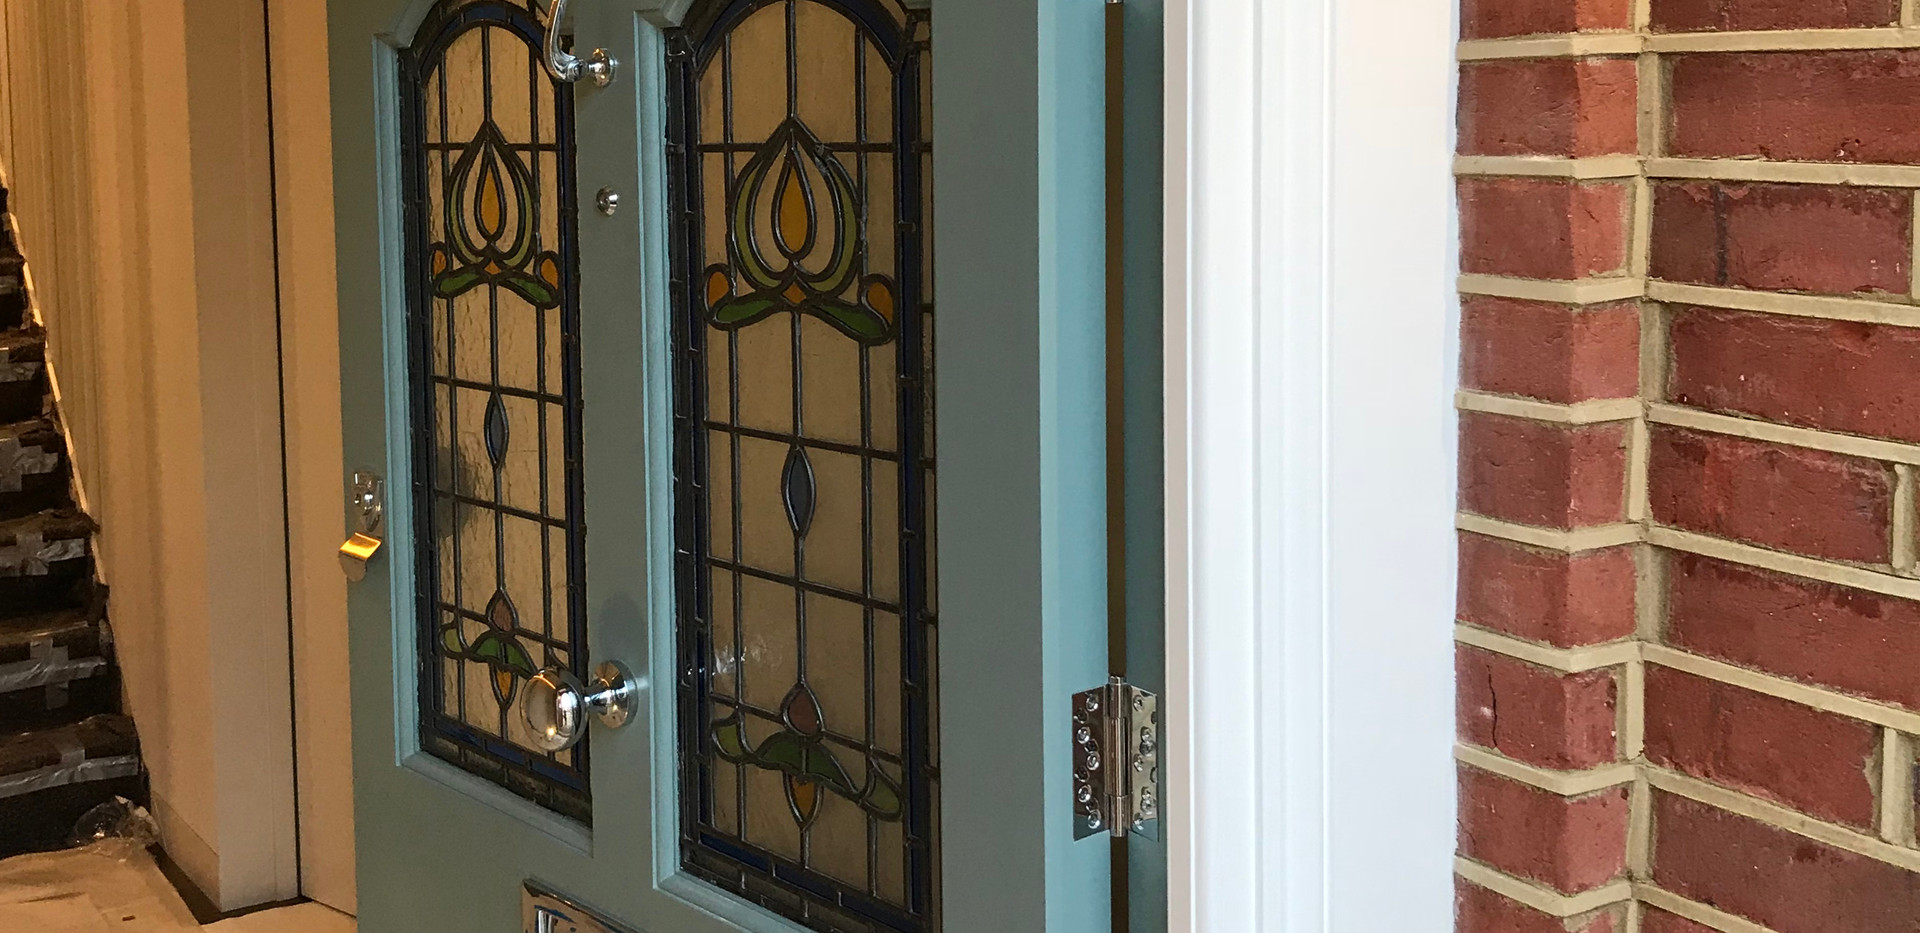 London door with stained glass